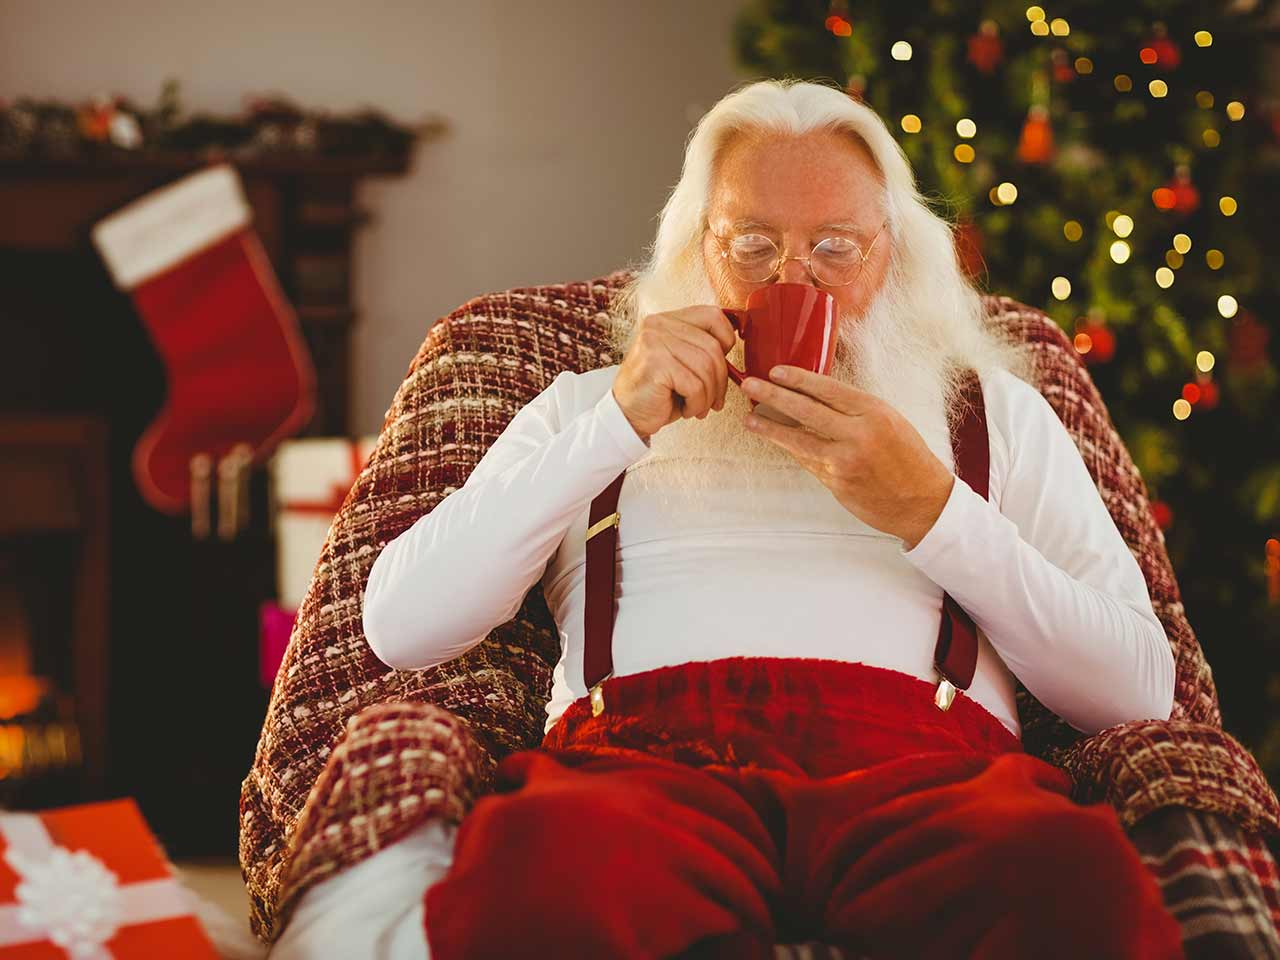 Santa sitting on chair, drinking hot cocoa | Wavebreakmedia/iStock/Getty Images Plus/Getty Images